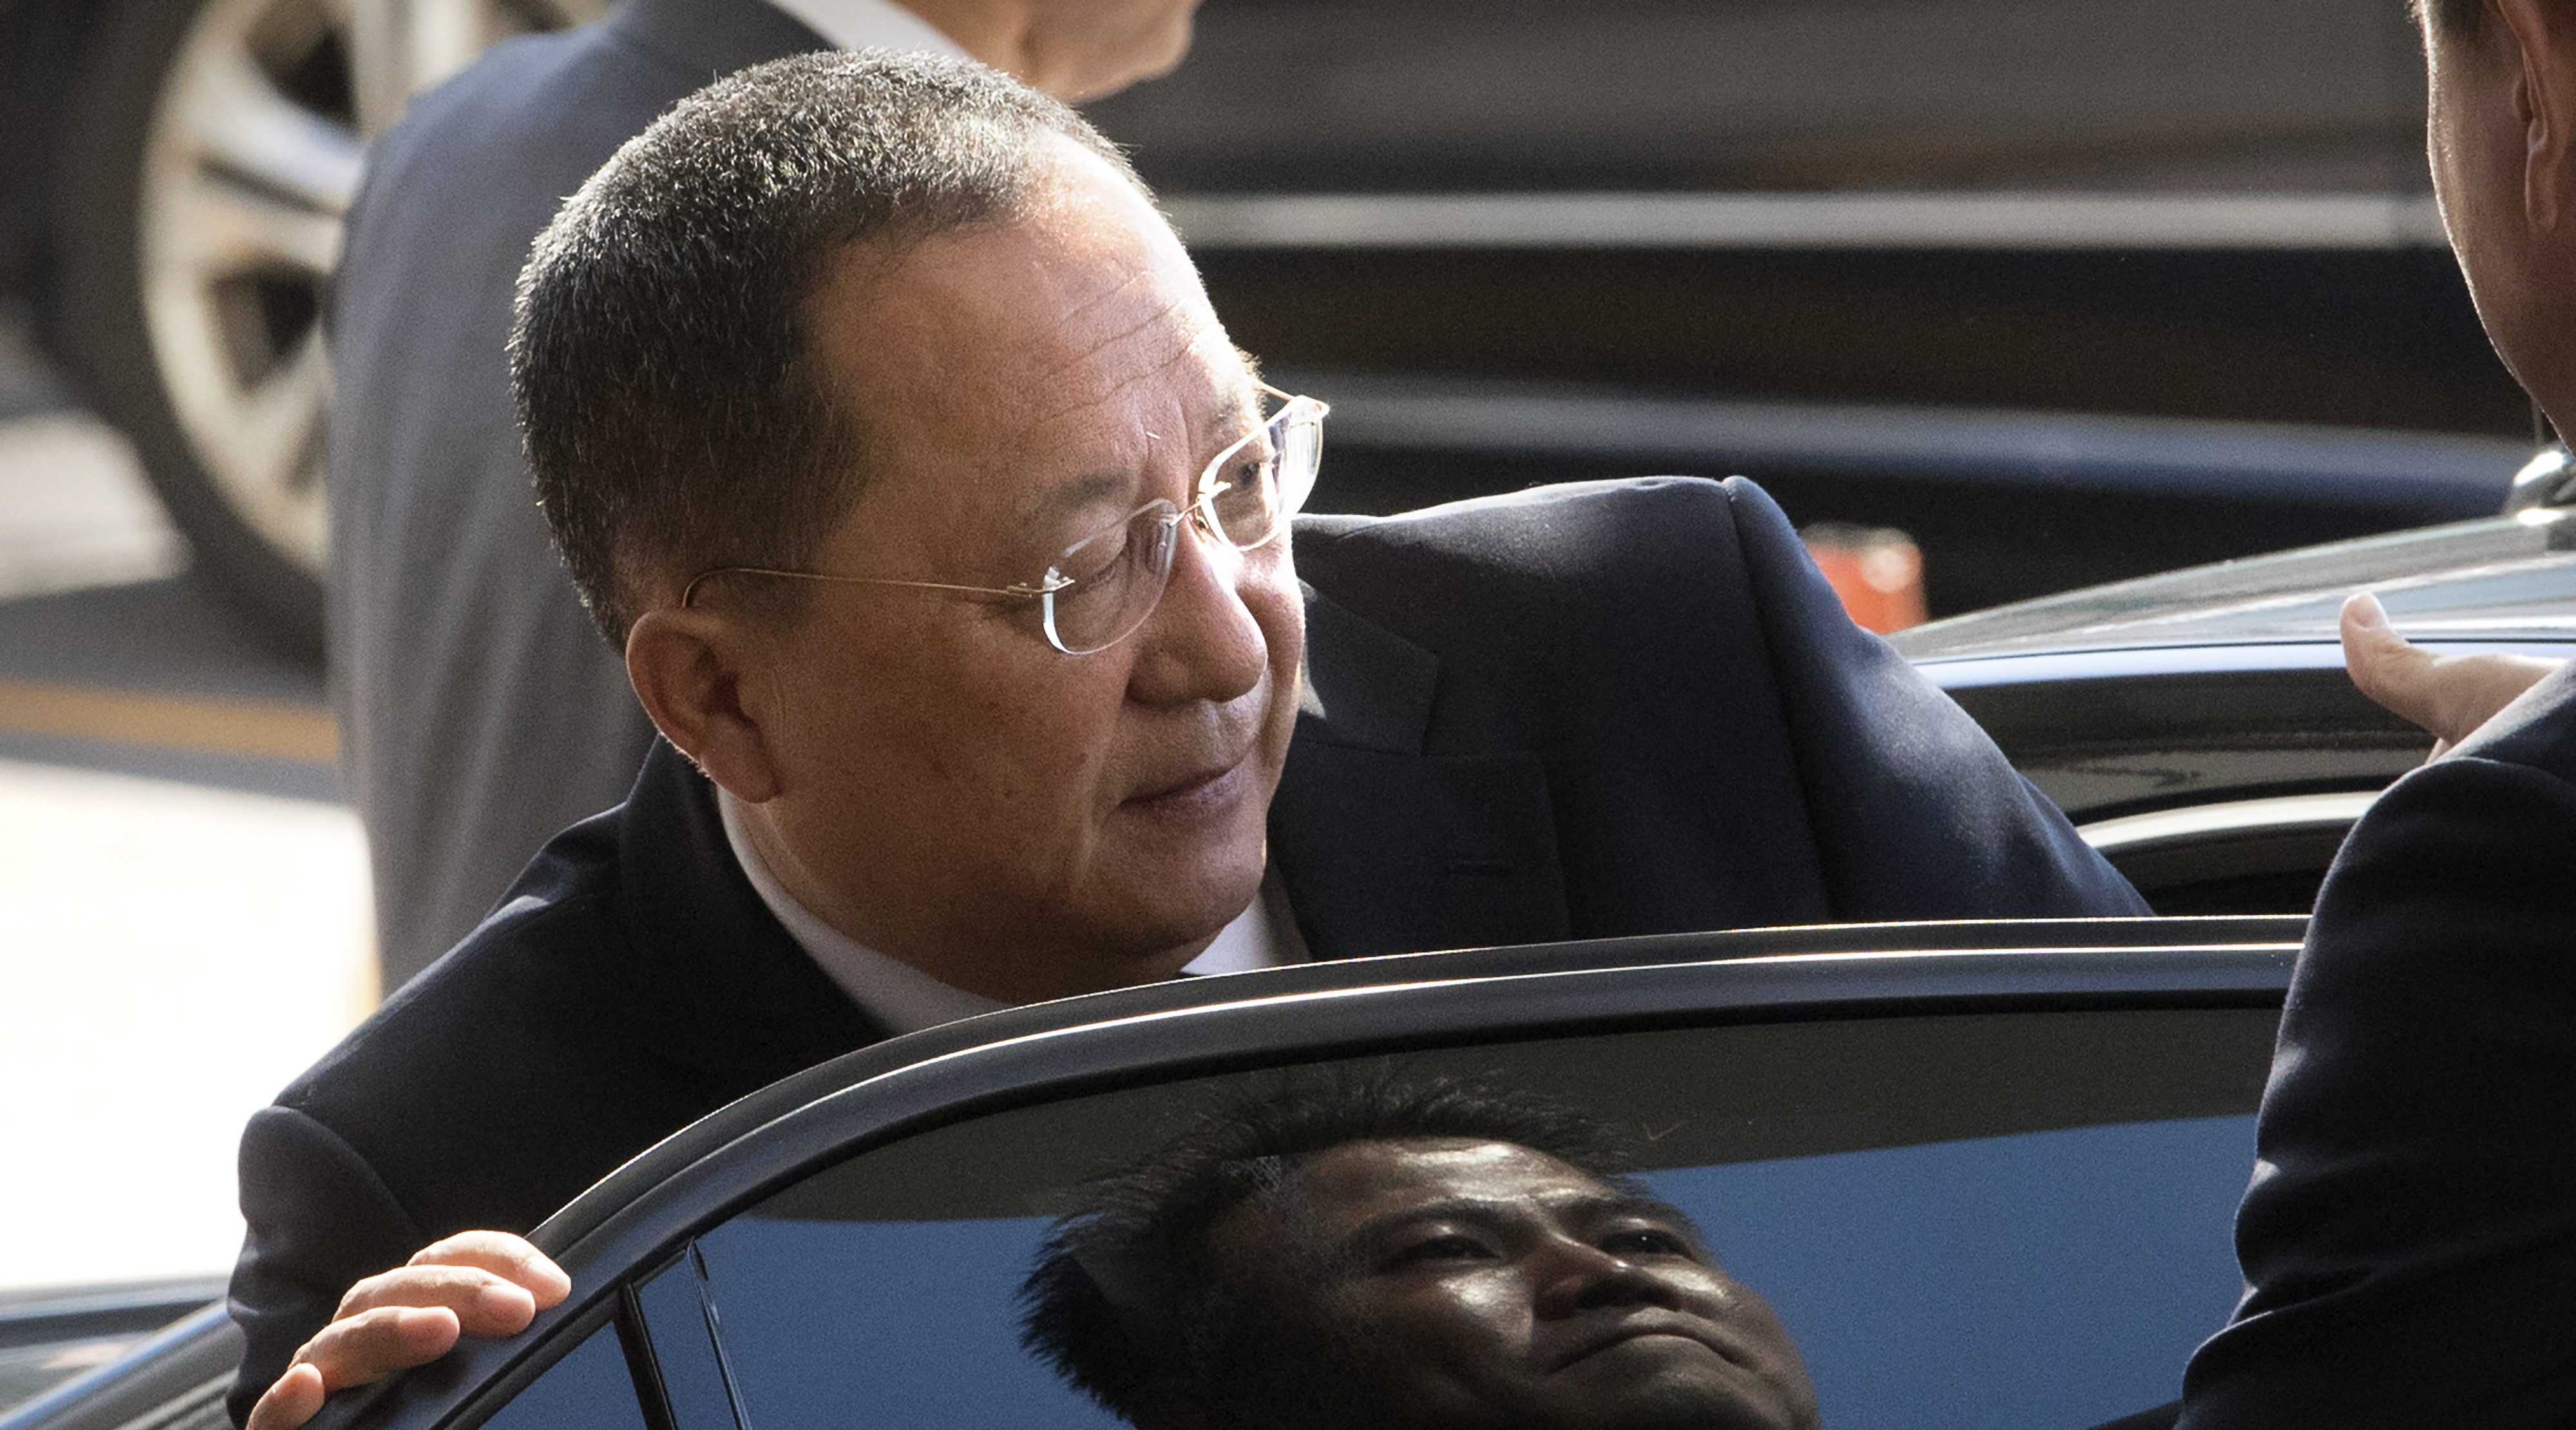 North Korean Foreign Minister Ri Yong Ho gets into a car at Beijing Capital International Airport in Beijing, Tuesday, Sept. 19, 2017. Ri flew from Pyongyang to Beijing on Tuesday morning to go to New York for the U.N. General Assembly.